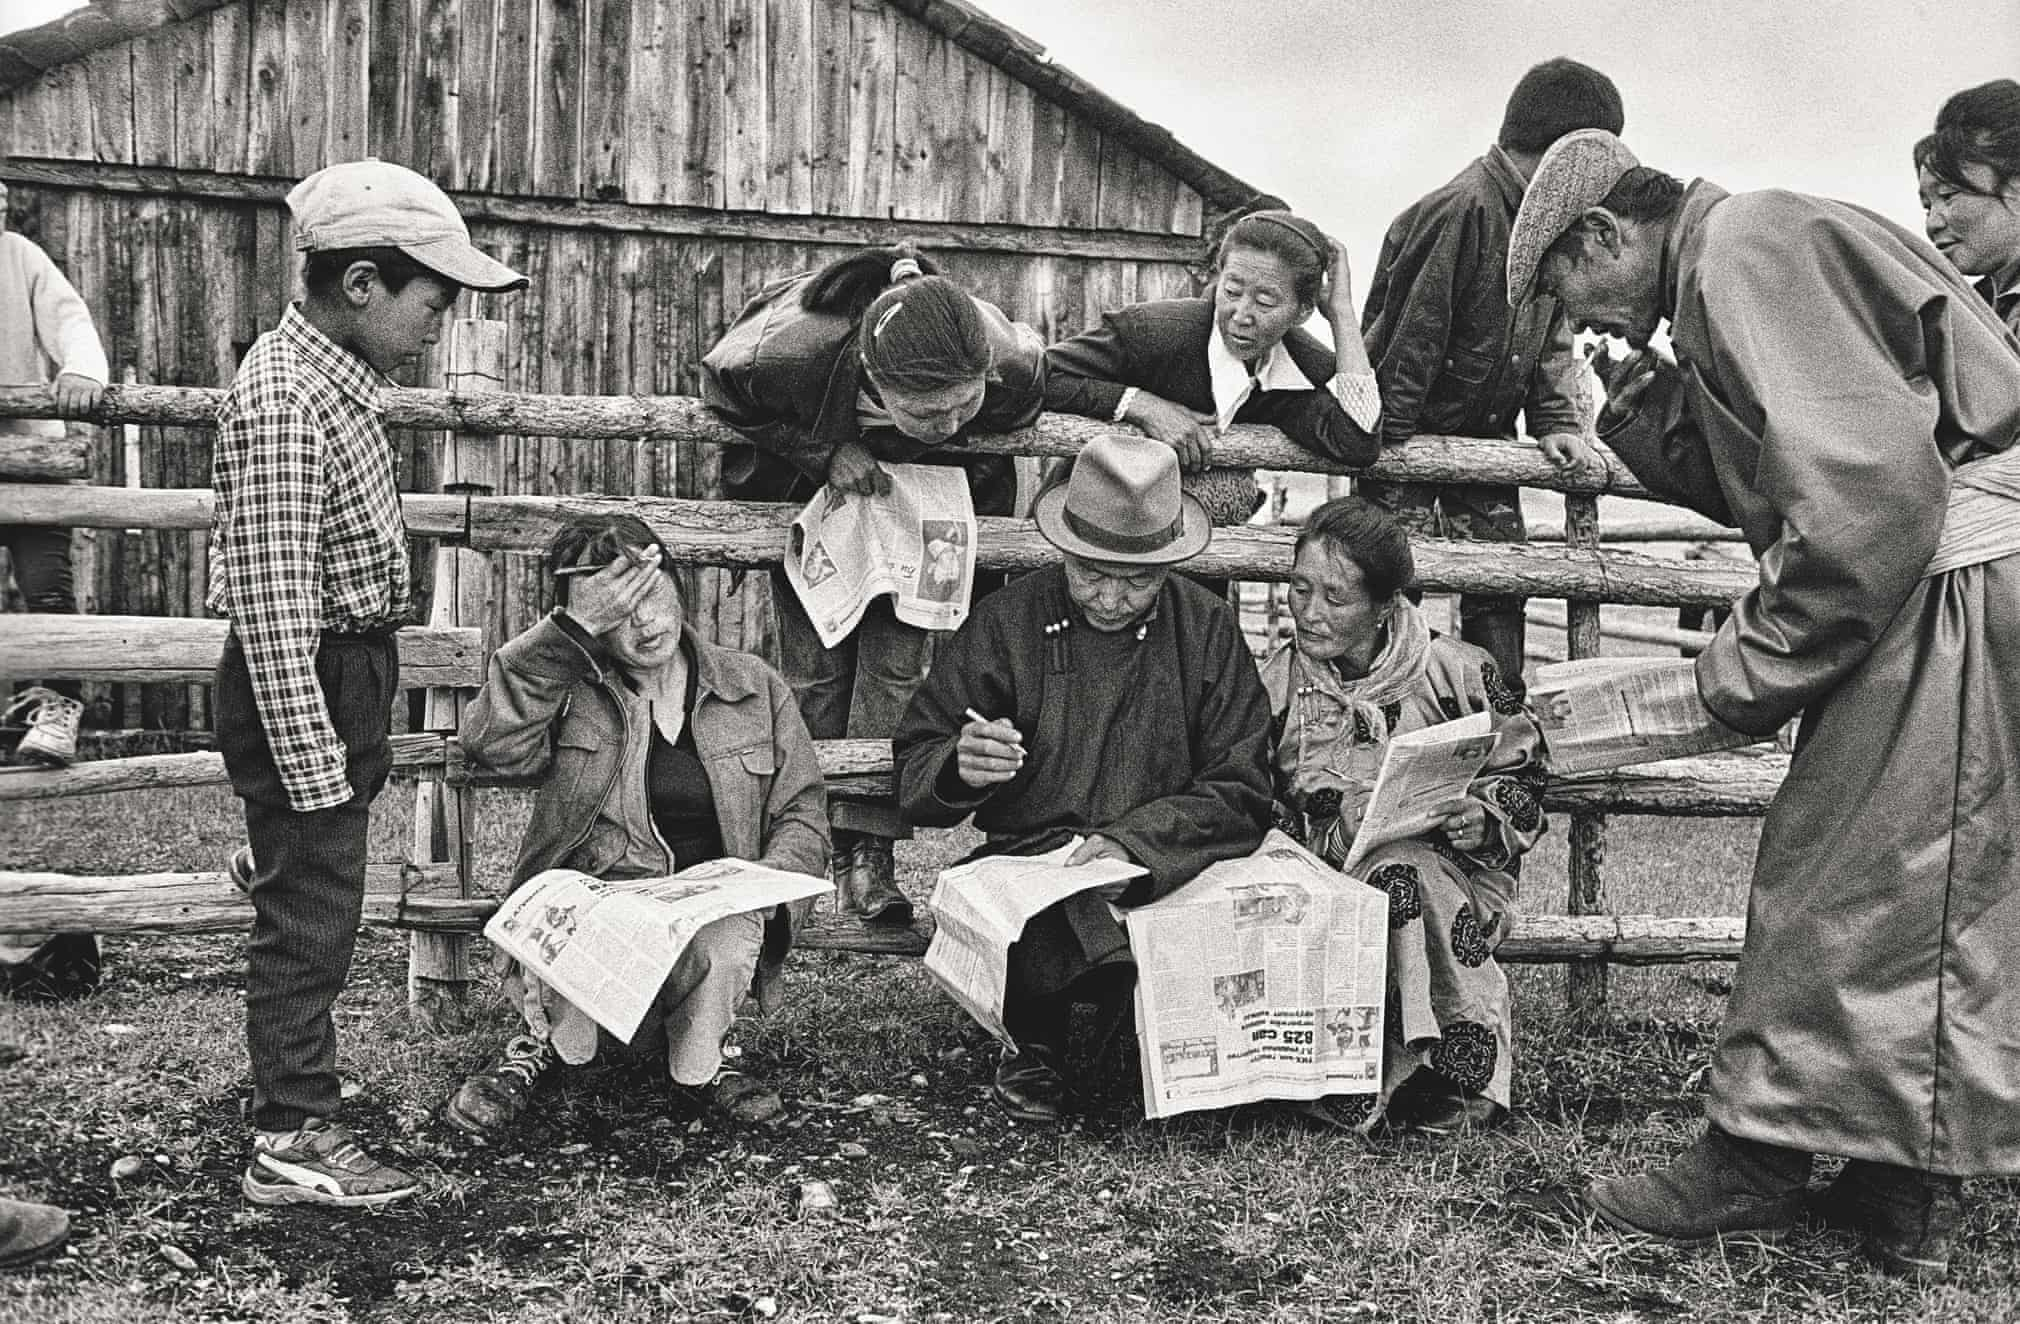 The voters in a small village near lake Khövsgöl prepare lottery coupons for a draw, solving a crossword, after a meeting with the opposition leader Lamjavyn Gündalai, during the electoral campaign in 2004. Mongolia, 2004